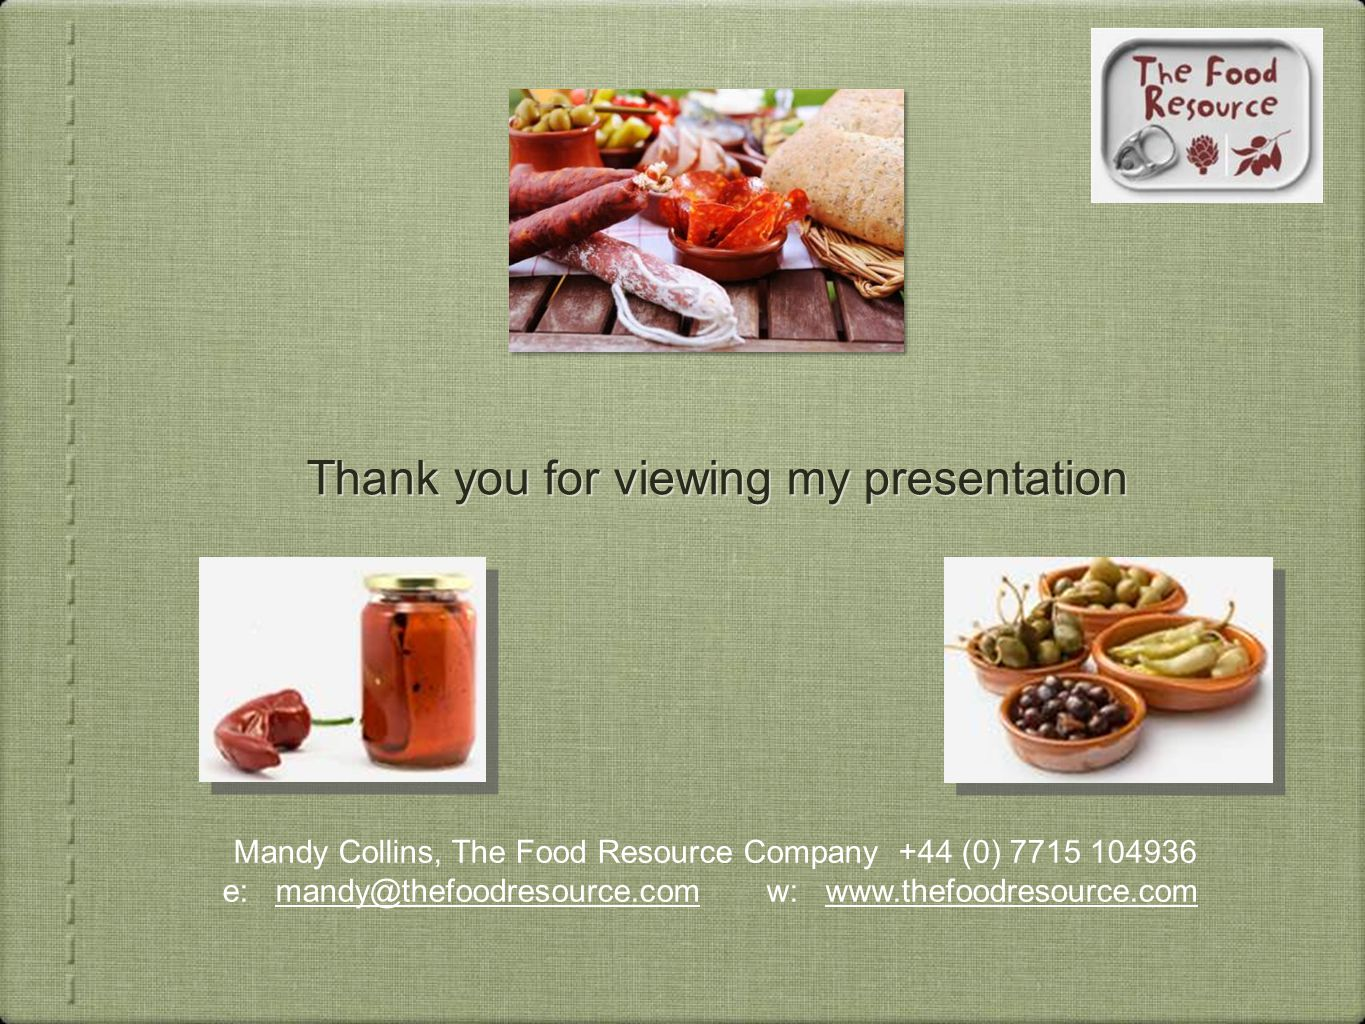 Thank you for viewing my presentation Mandy Collins, The Food Resource Company +44 (0) 7715 104936 e: mandy@thefoodresource.com w: www.thefoodresource.com